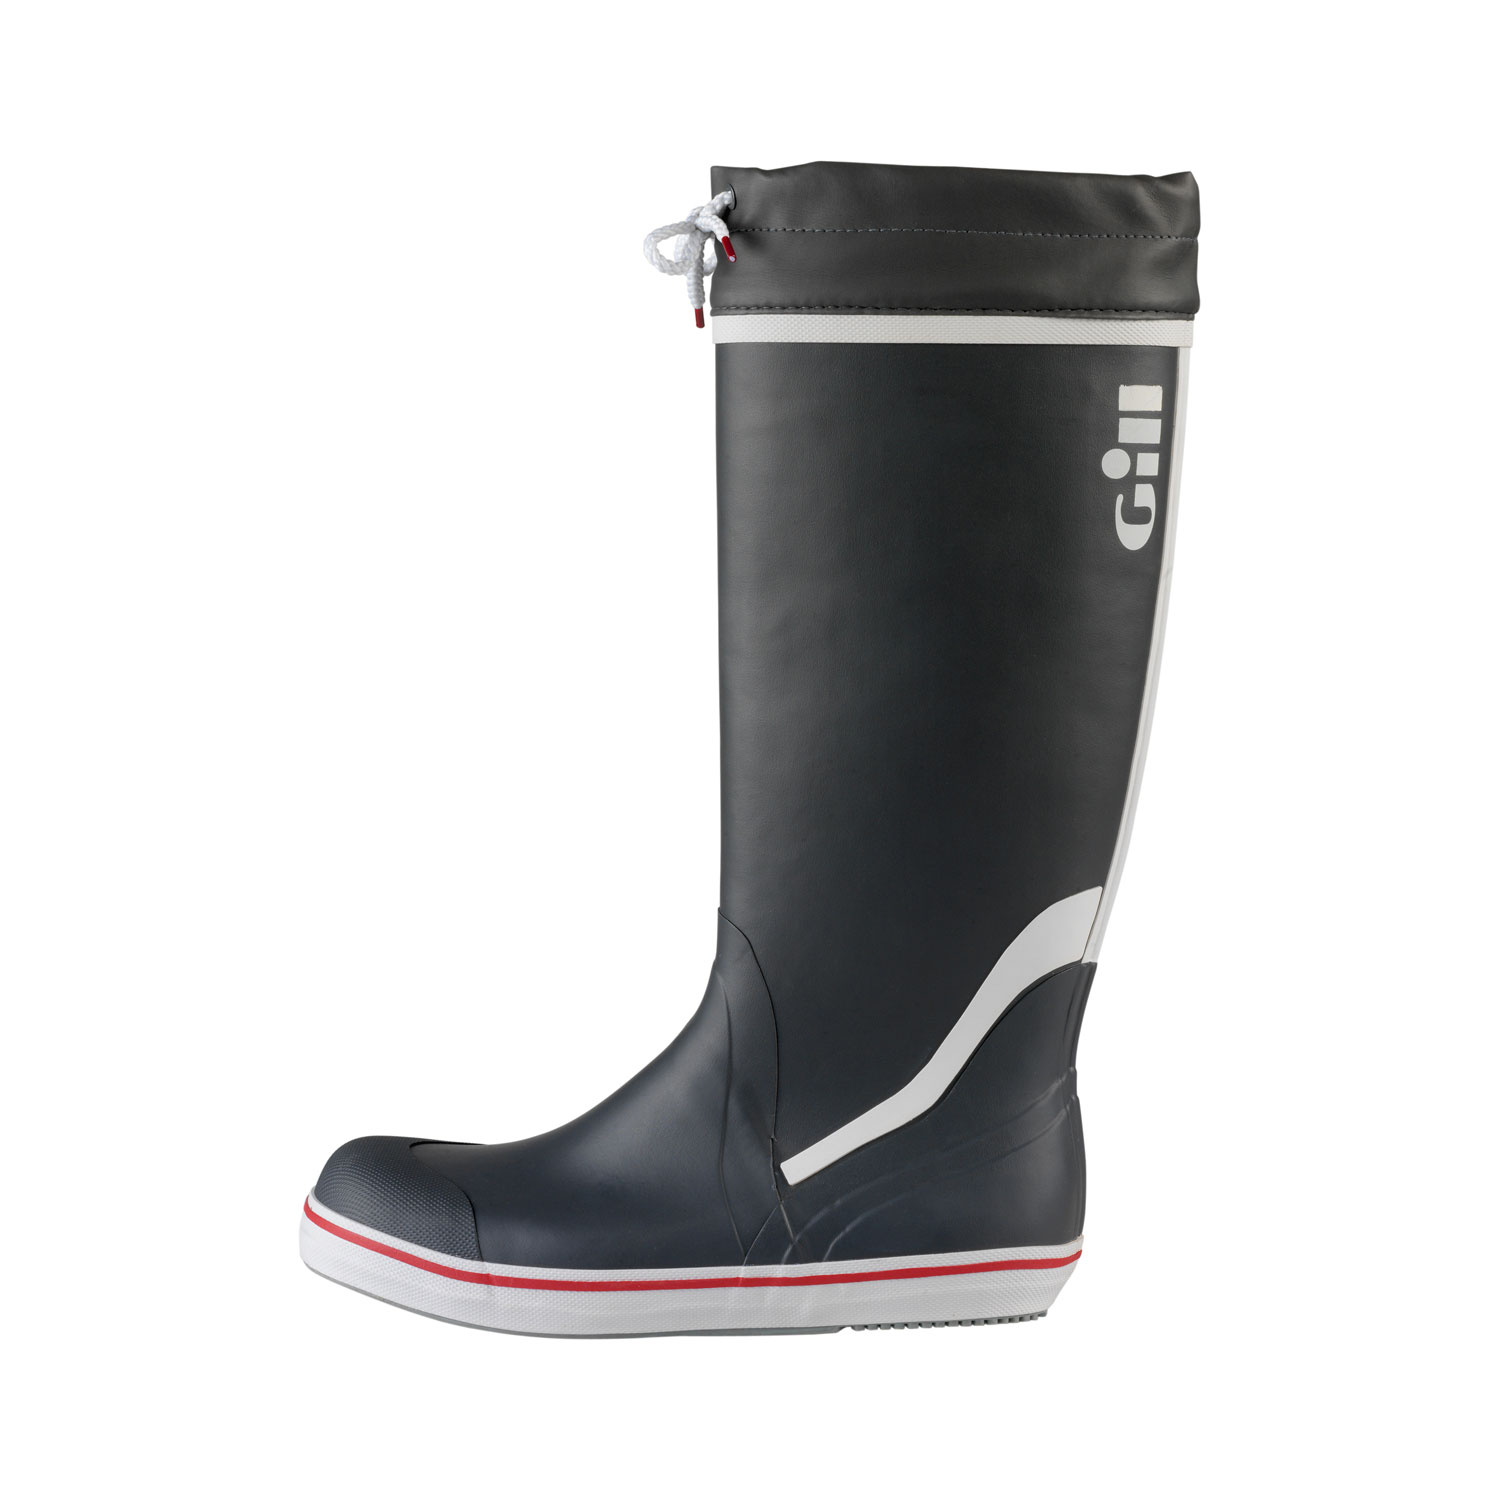 Gill Tall Yachting Boot Carbon Coast Water Sports